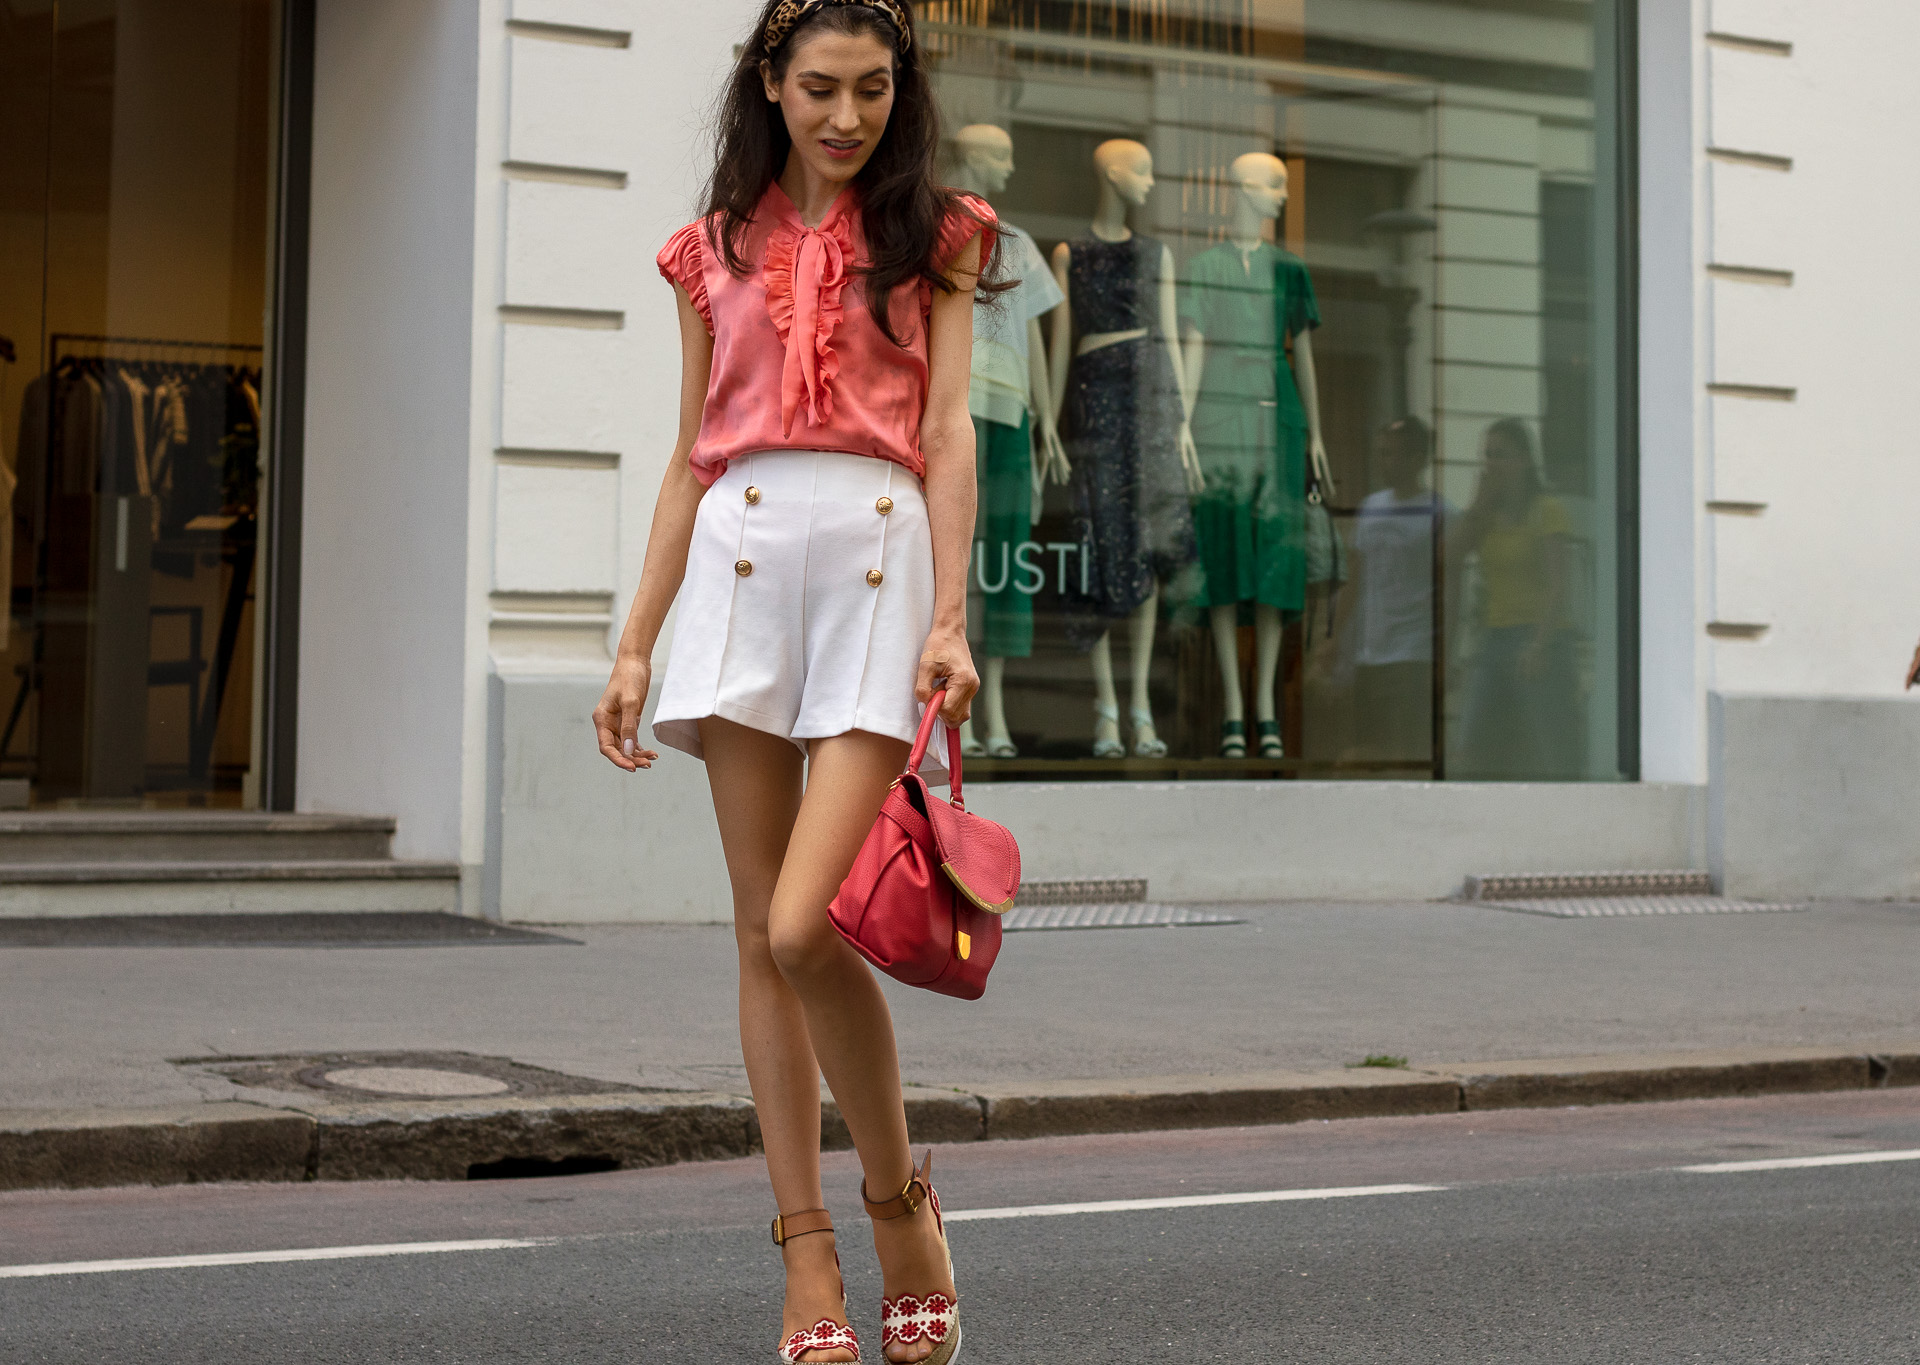 Gossip Girl Veronika Lipar Fashion Blogger of Brunette from Wall Street dressed in peachy orange pussy-bow tie blouse white shorts leopard print headband pink top handle bag See by Chloe wedge espadrille sandals walking down the street